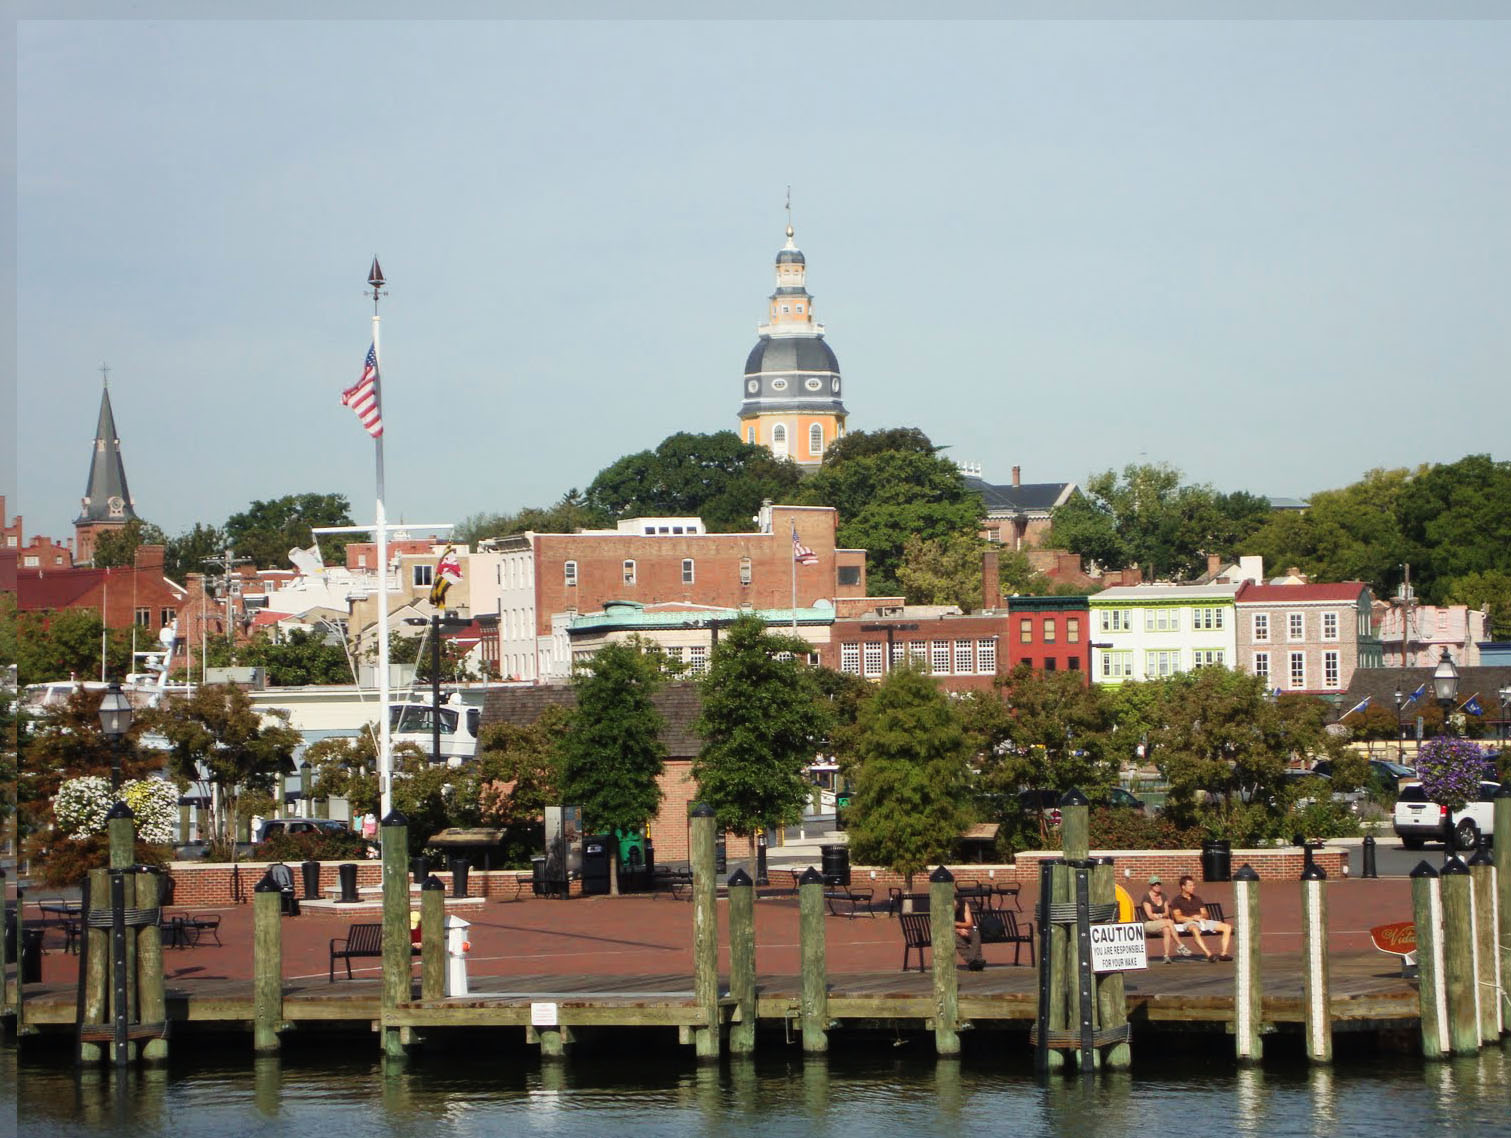 Renderings of the early paint scheme for the Maryland State House Dome as viewed from the (modern) harbor. 2010 by Malcolm Dax